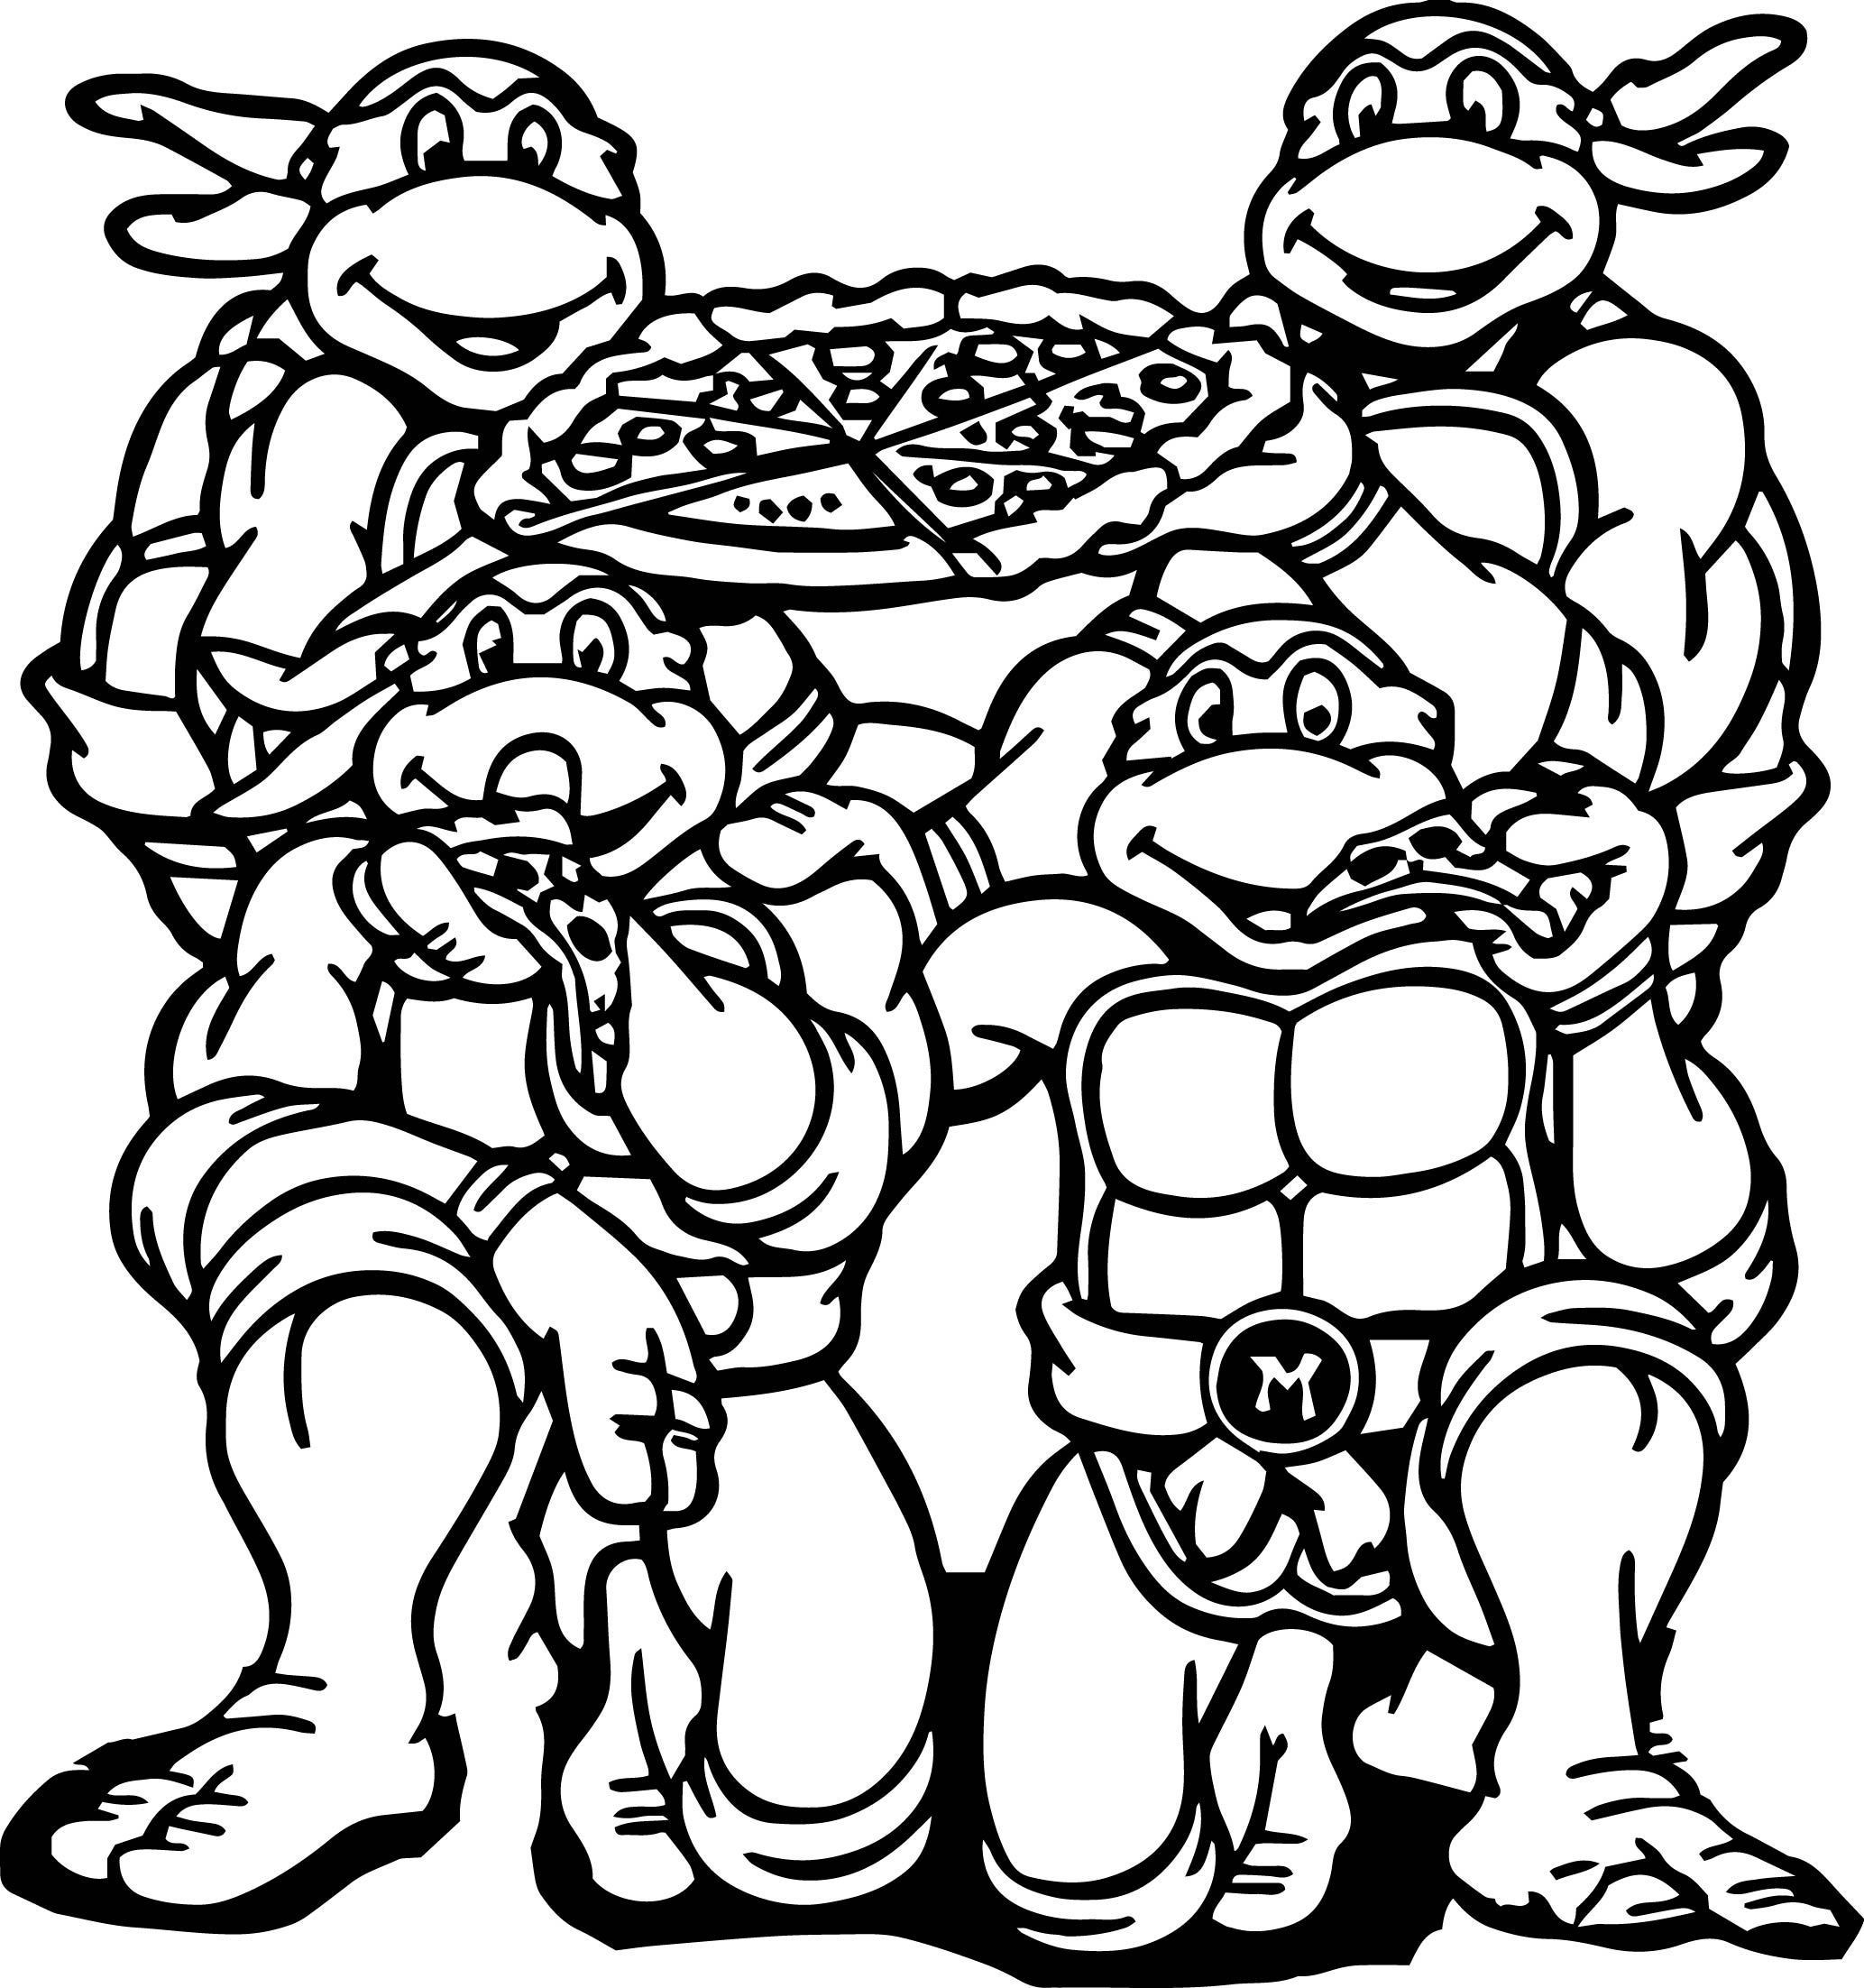 coloring pages nickelodeon nick jr coloring pages coloring pages for children pages coloring nickelodeon